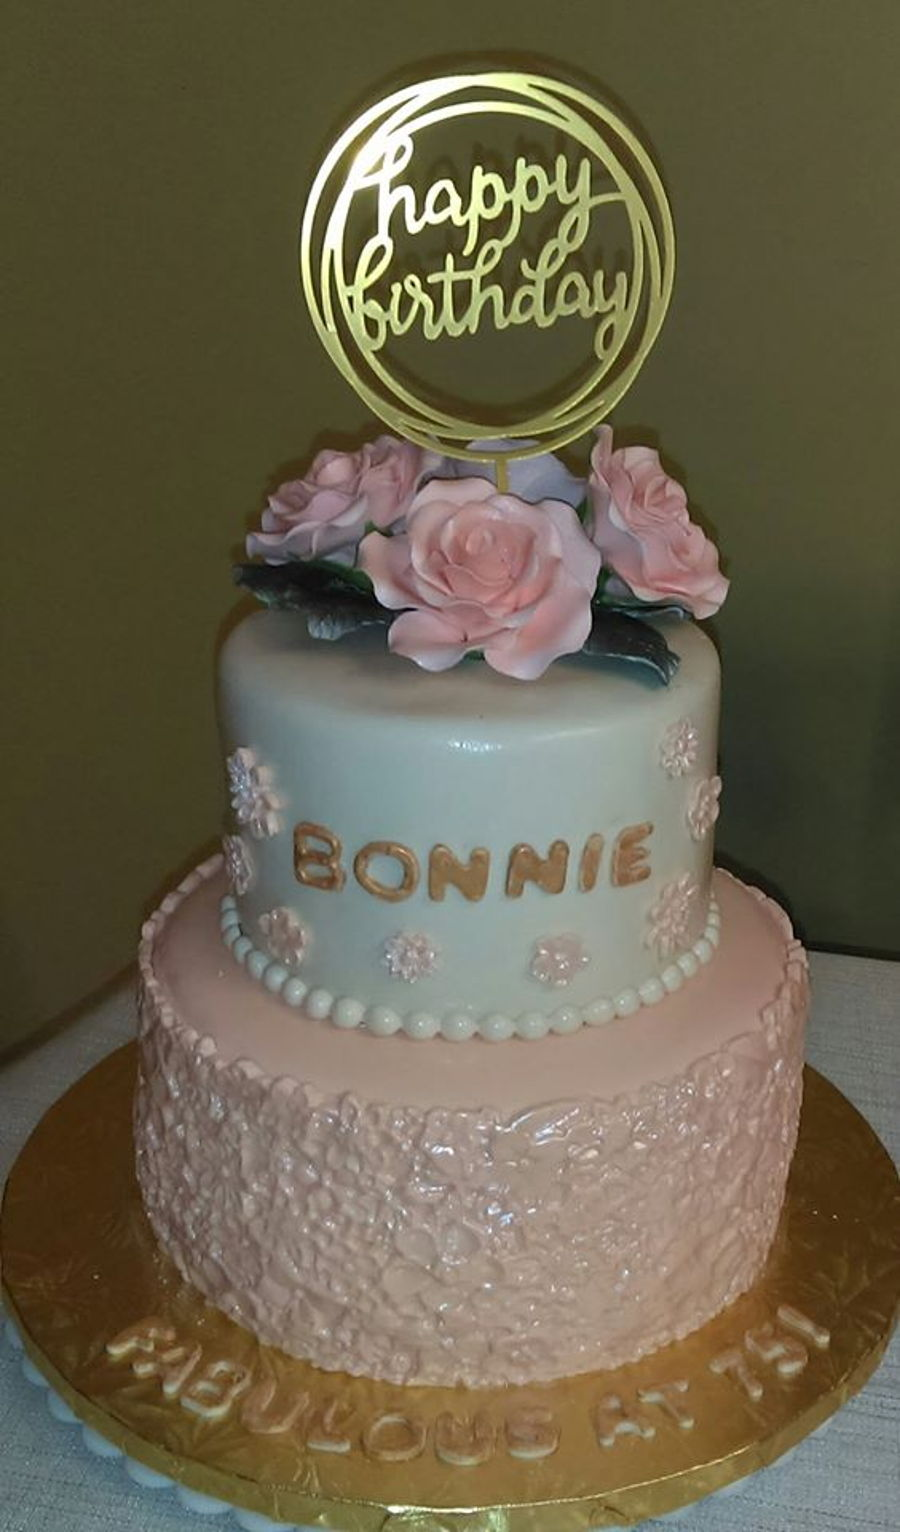 Remarkable Bonnies 75Th Birthday Cake Cakecentral Com Funny Birthday Cards Online Bapapcheapnameinfo